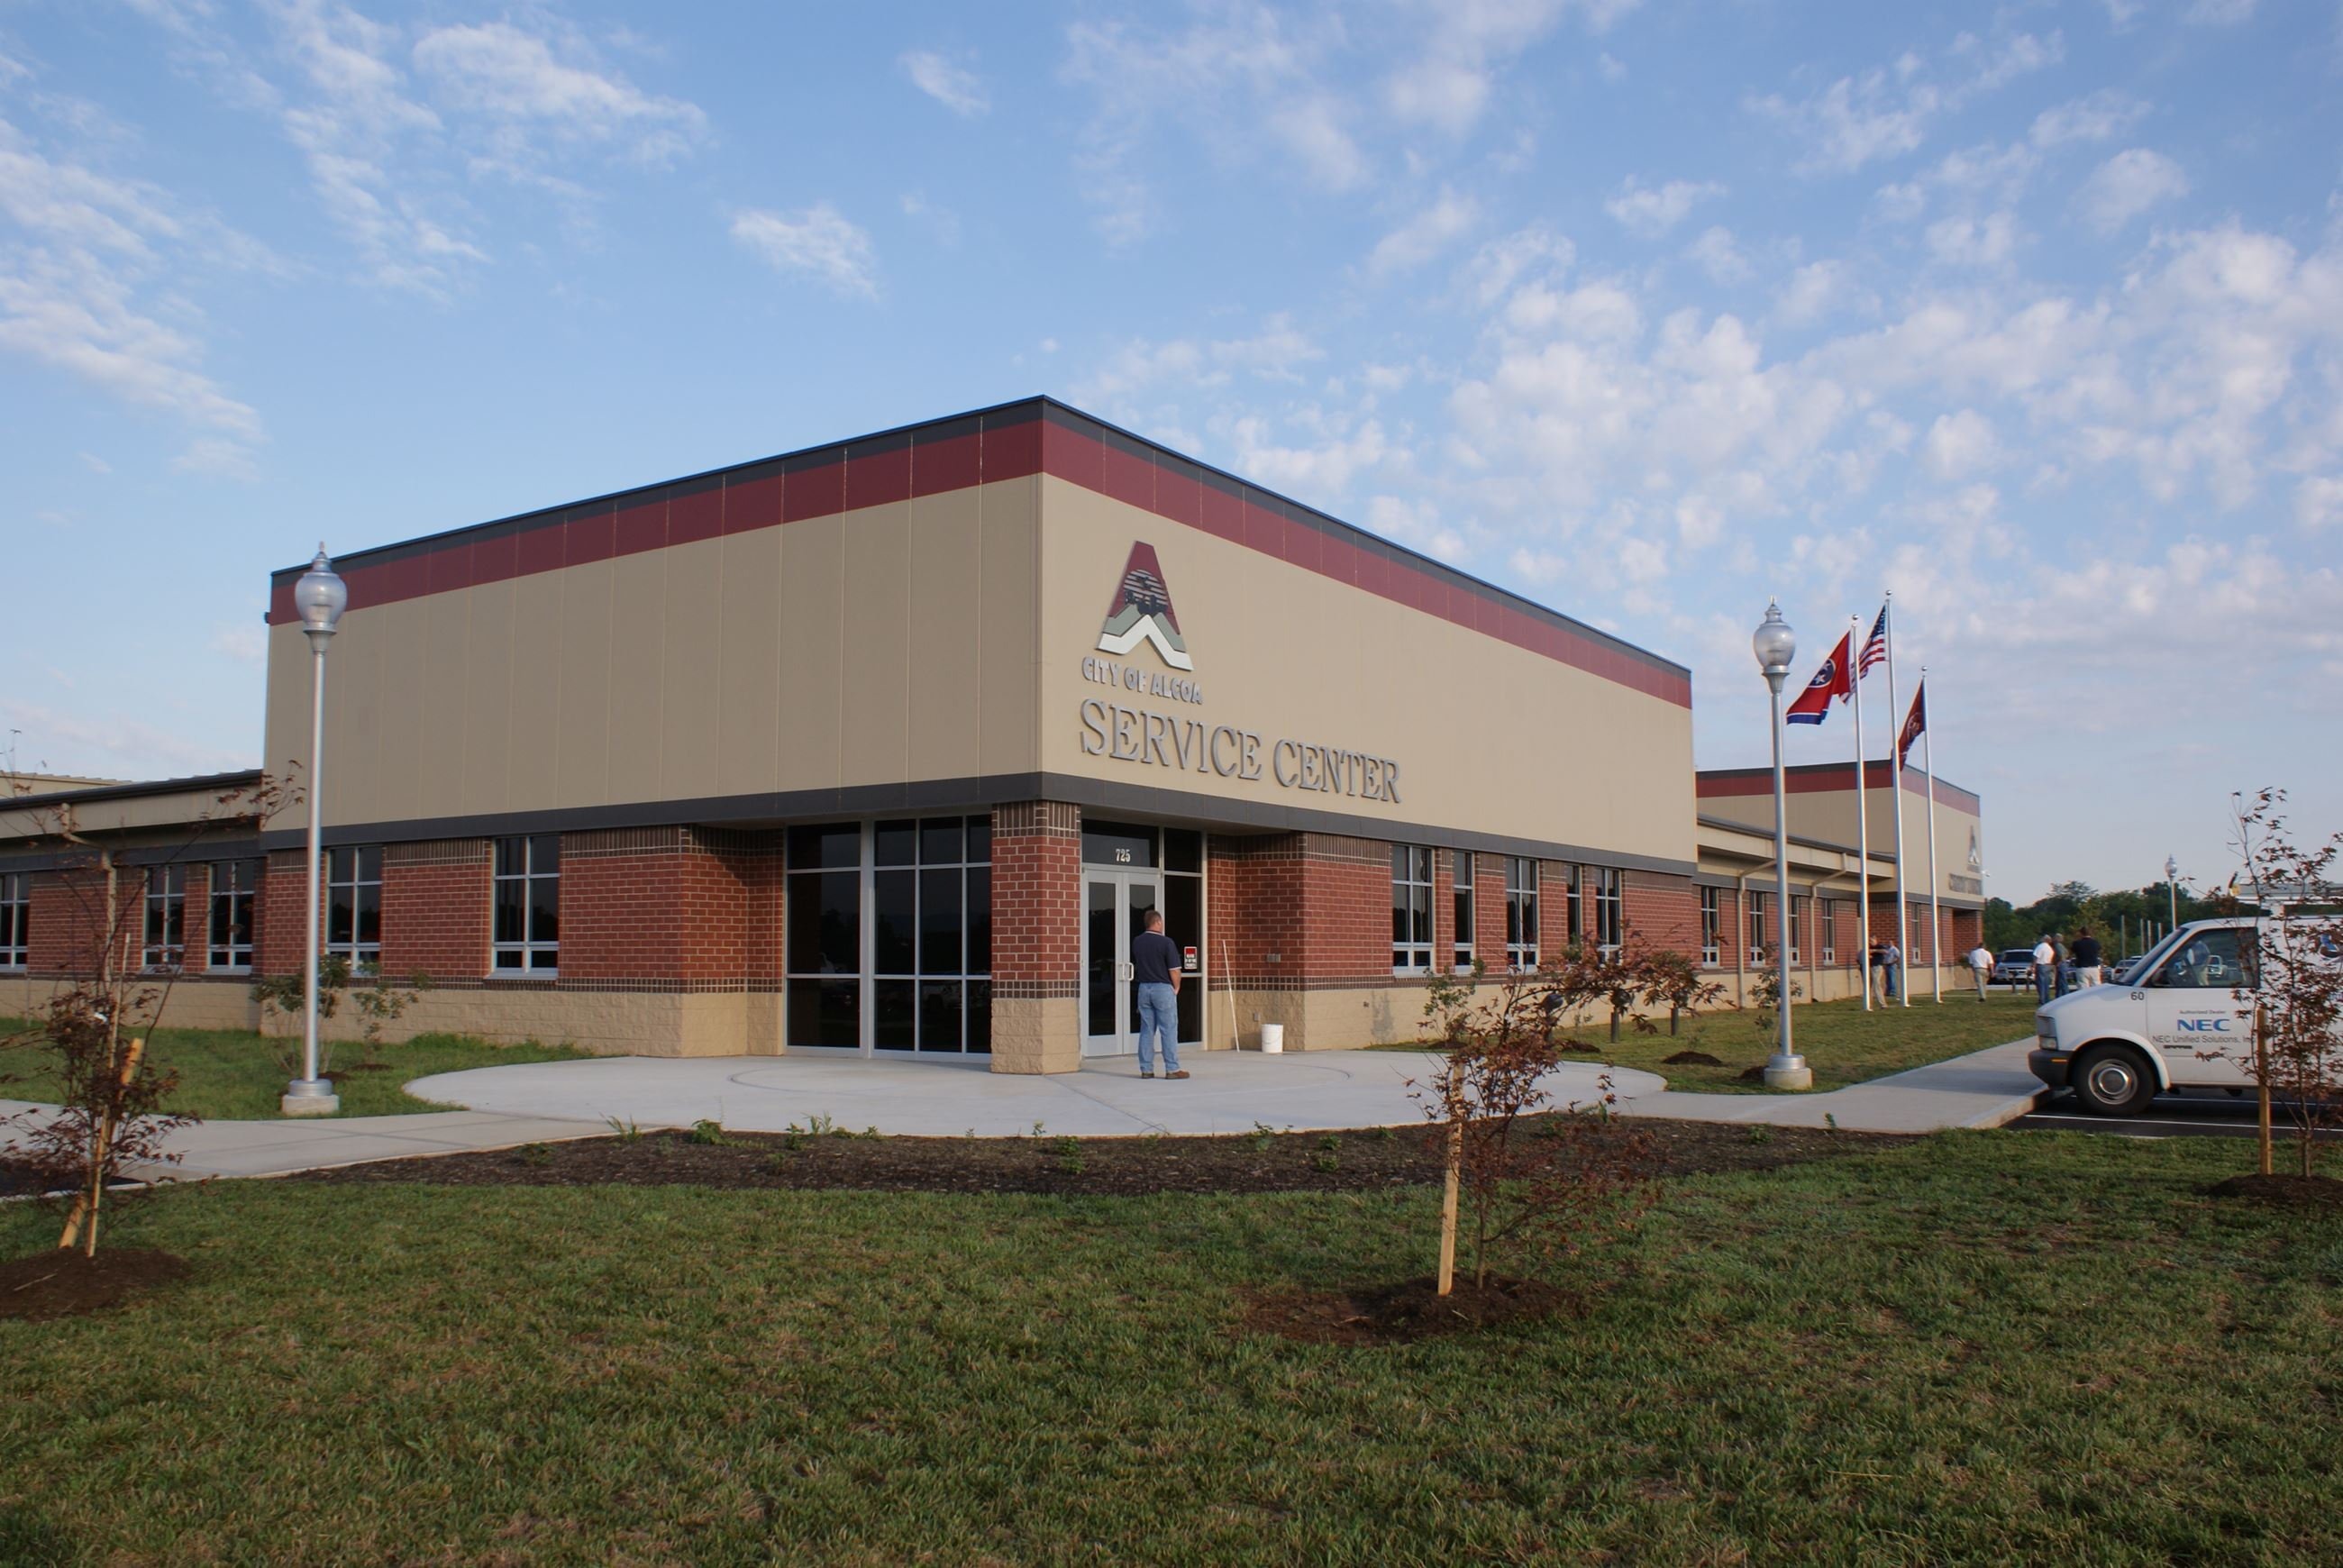 Picture of Service Center front